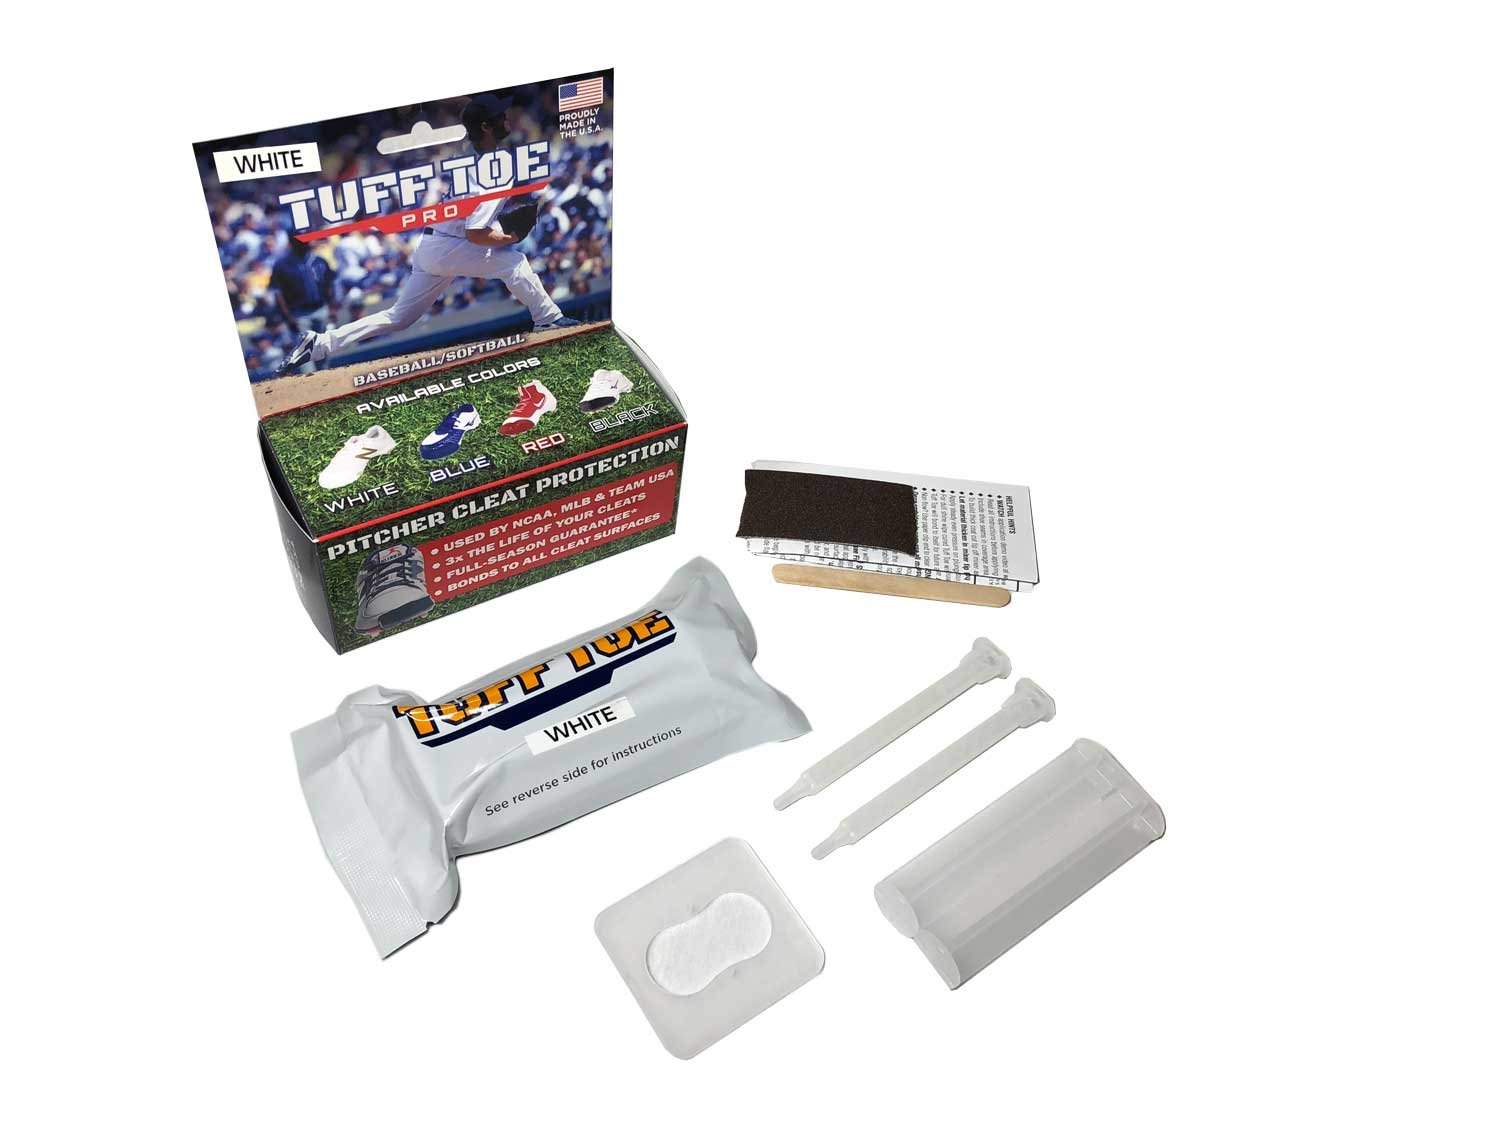 Tuff Toe Pro Pitching Toe White (No UV Protection) Cleat Protection Kit for Pitchers Toe